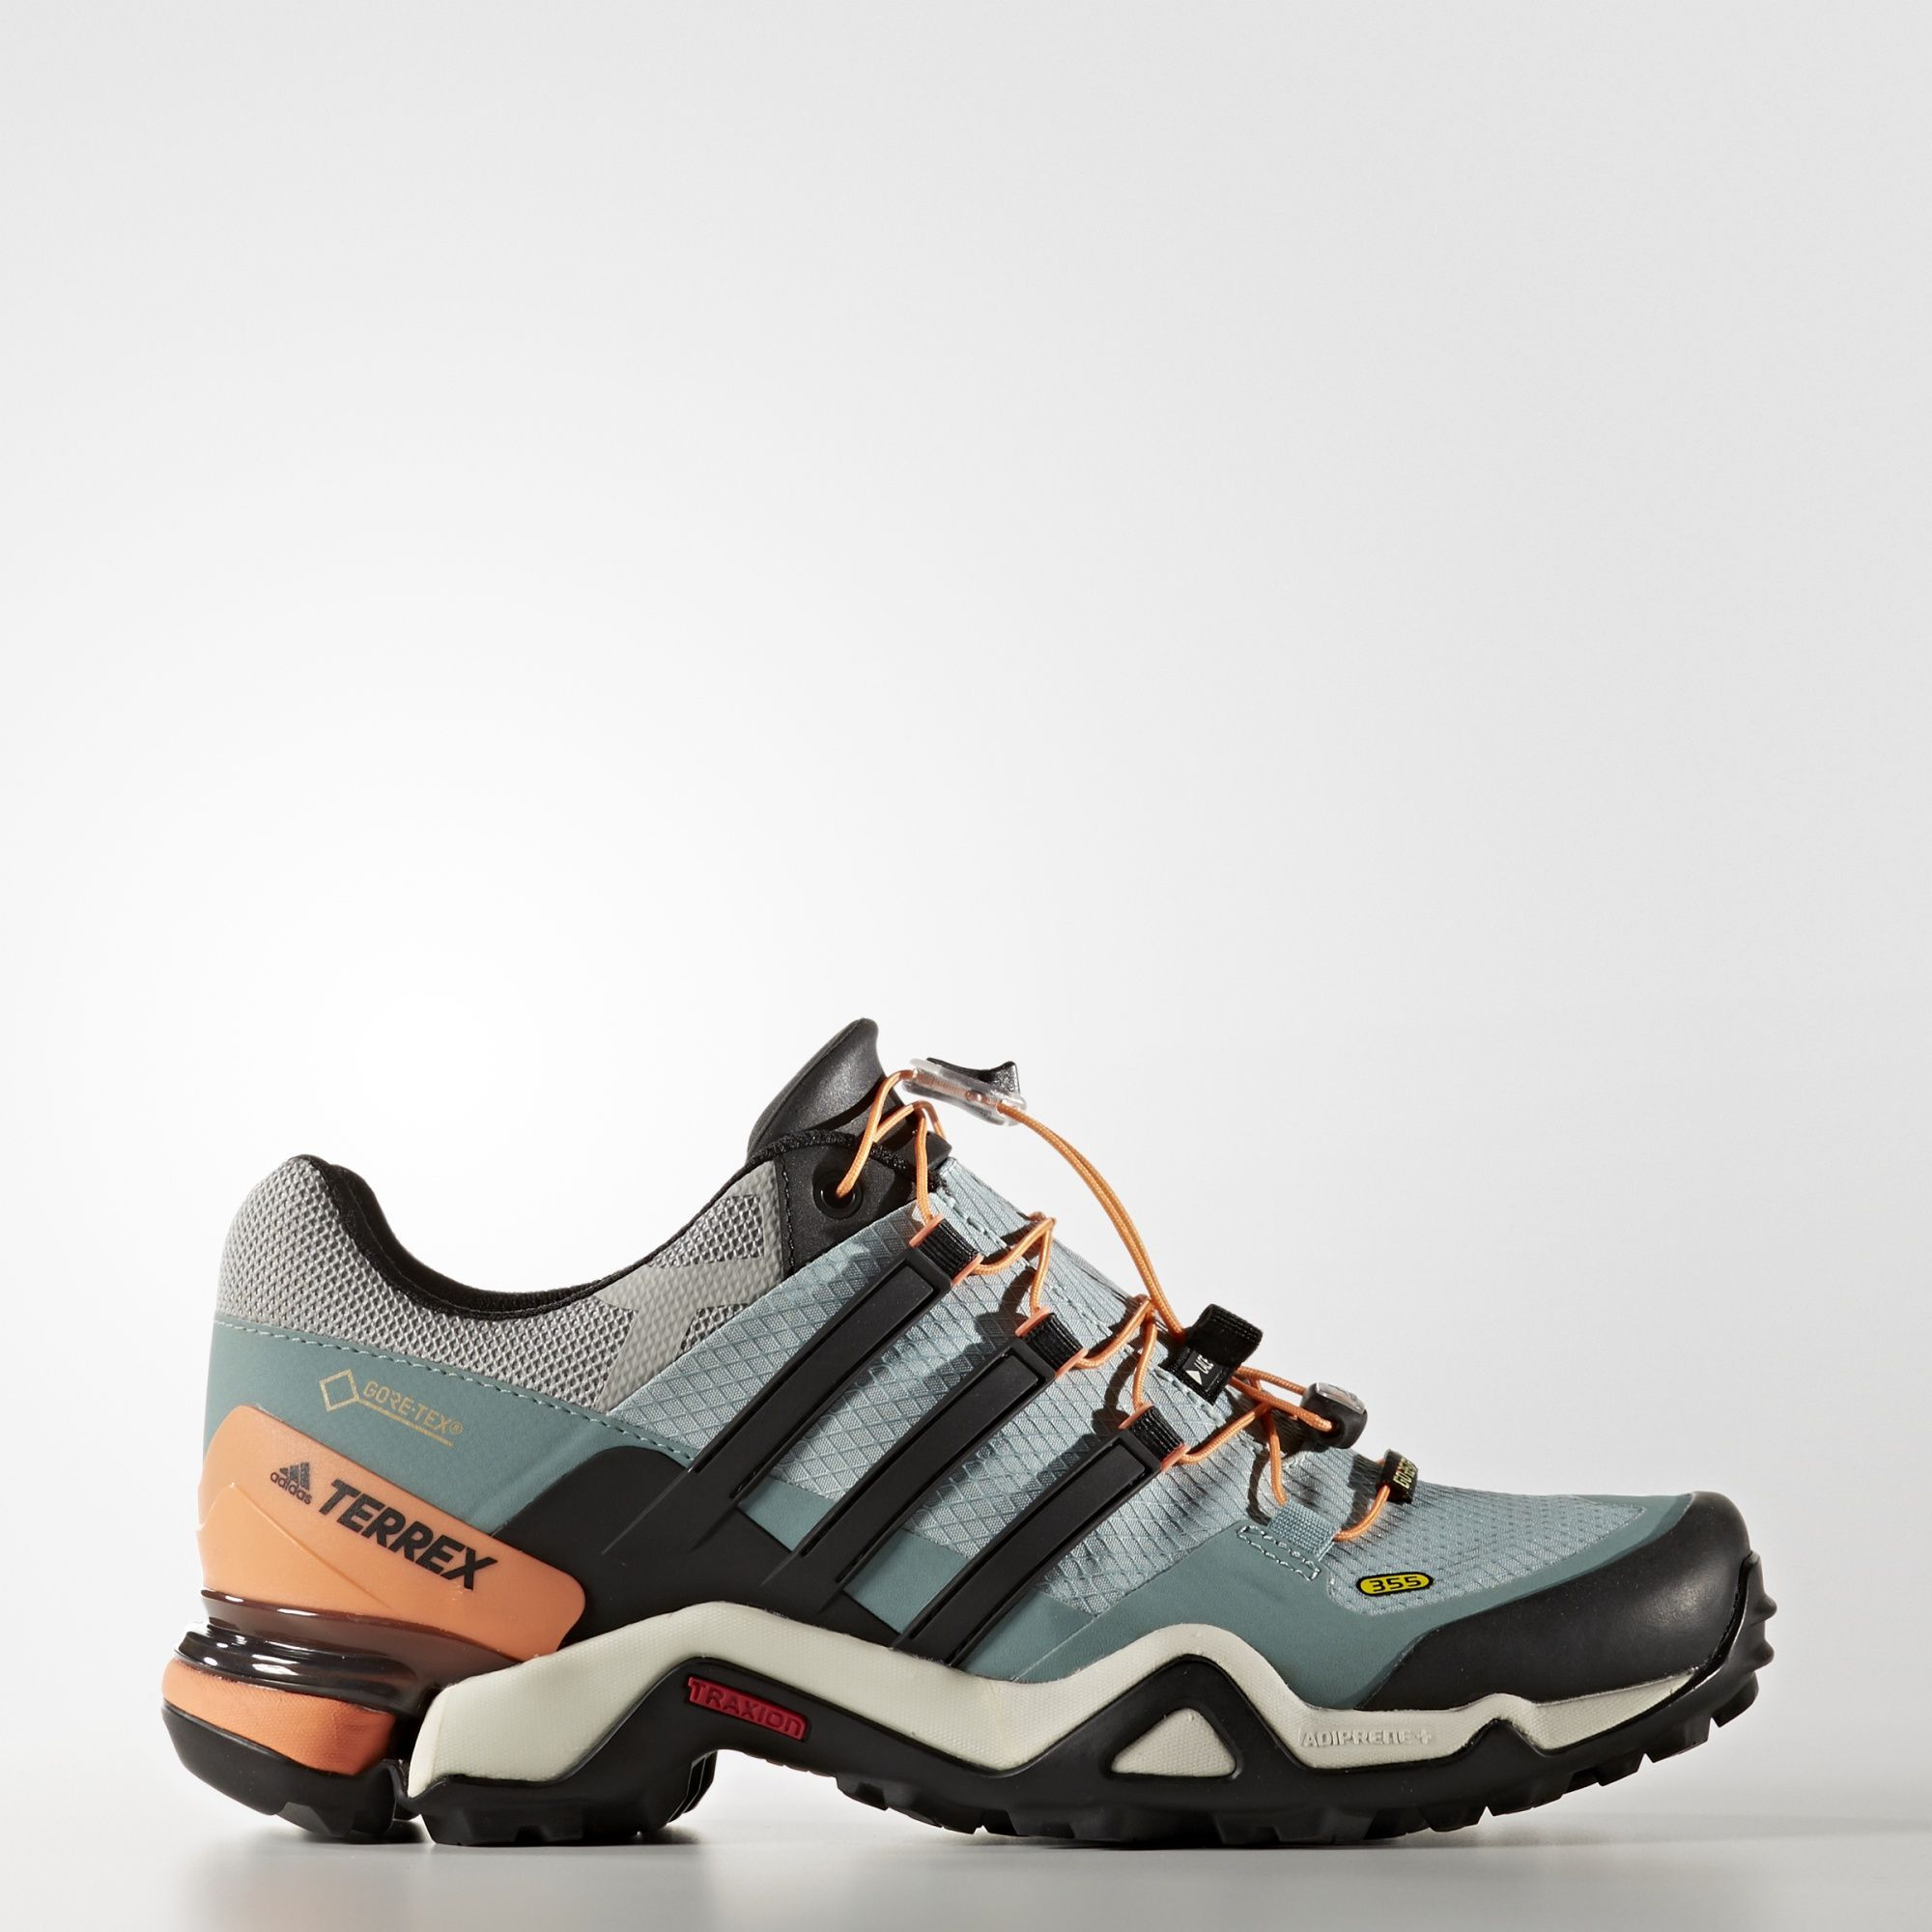 adidas - Terrex Fast R GTX Shoes Tactile Green/Core Black ...